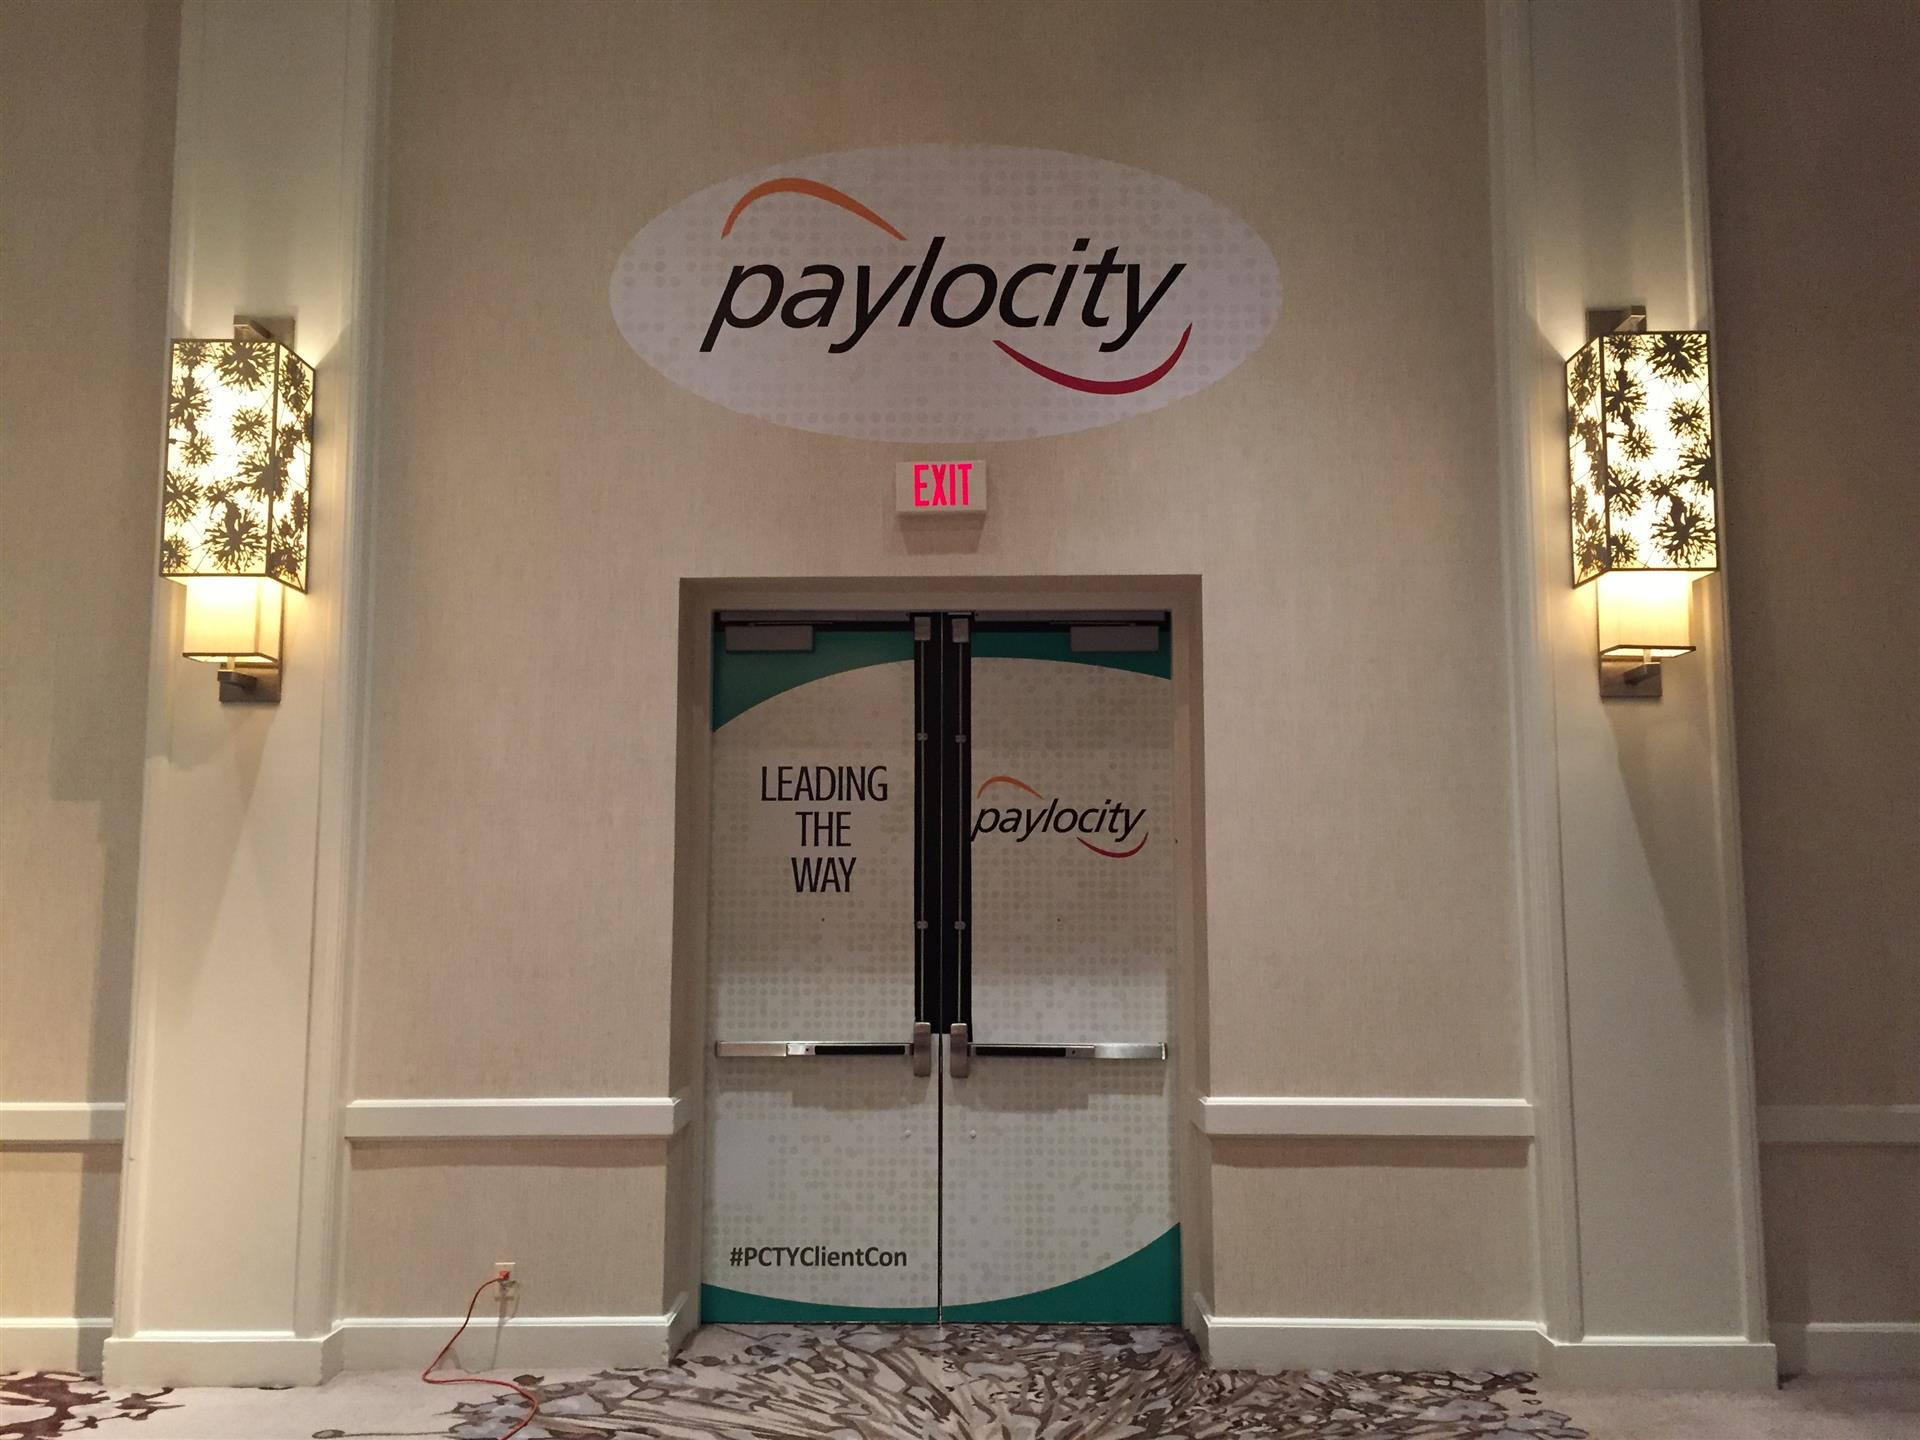 Paylocity Door Signs